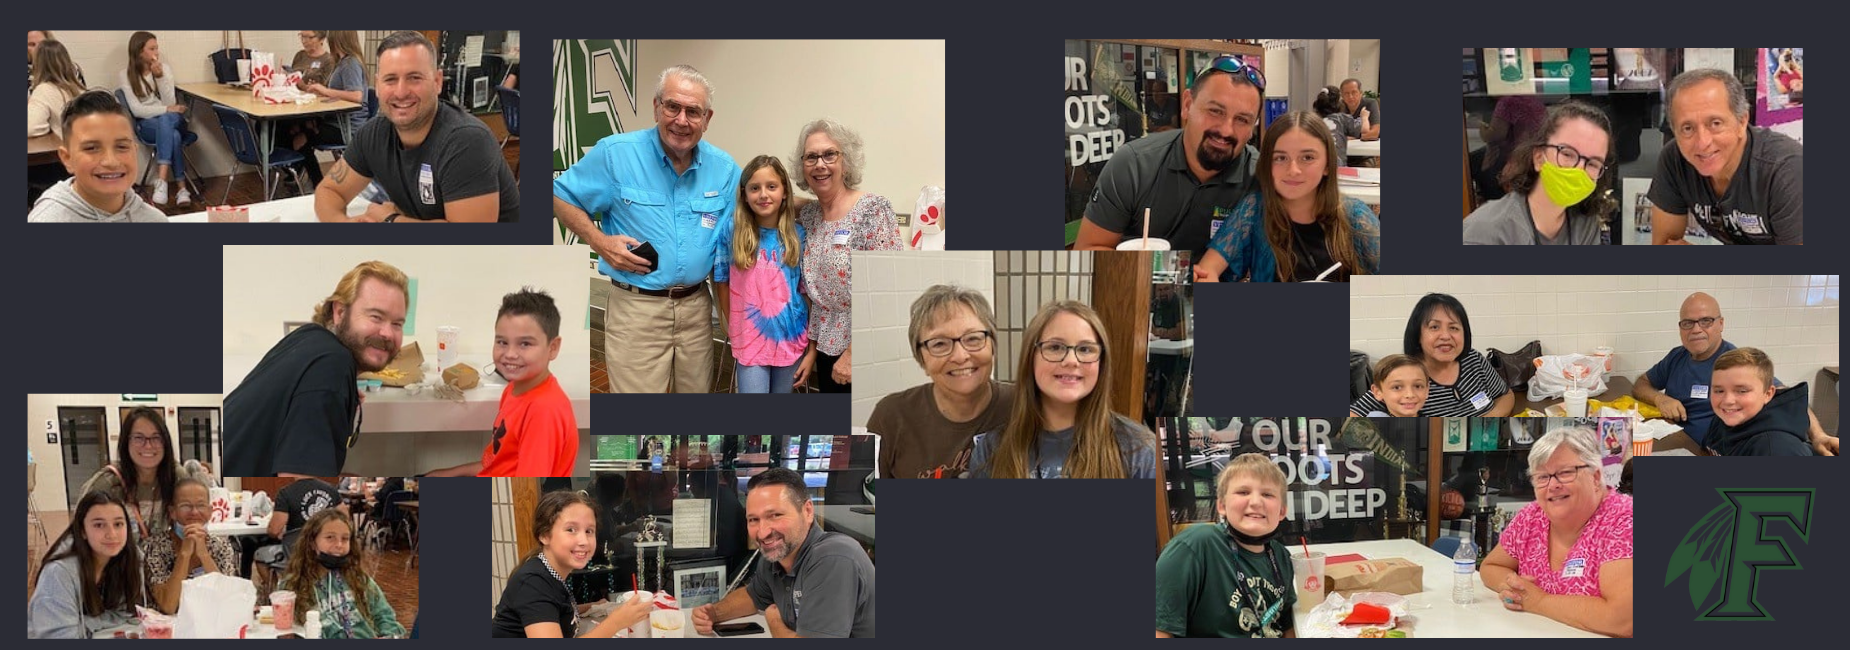 collage of pre teens having lunch at school with grandparents